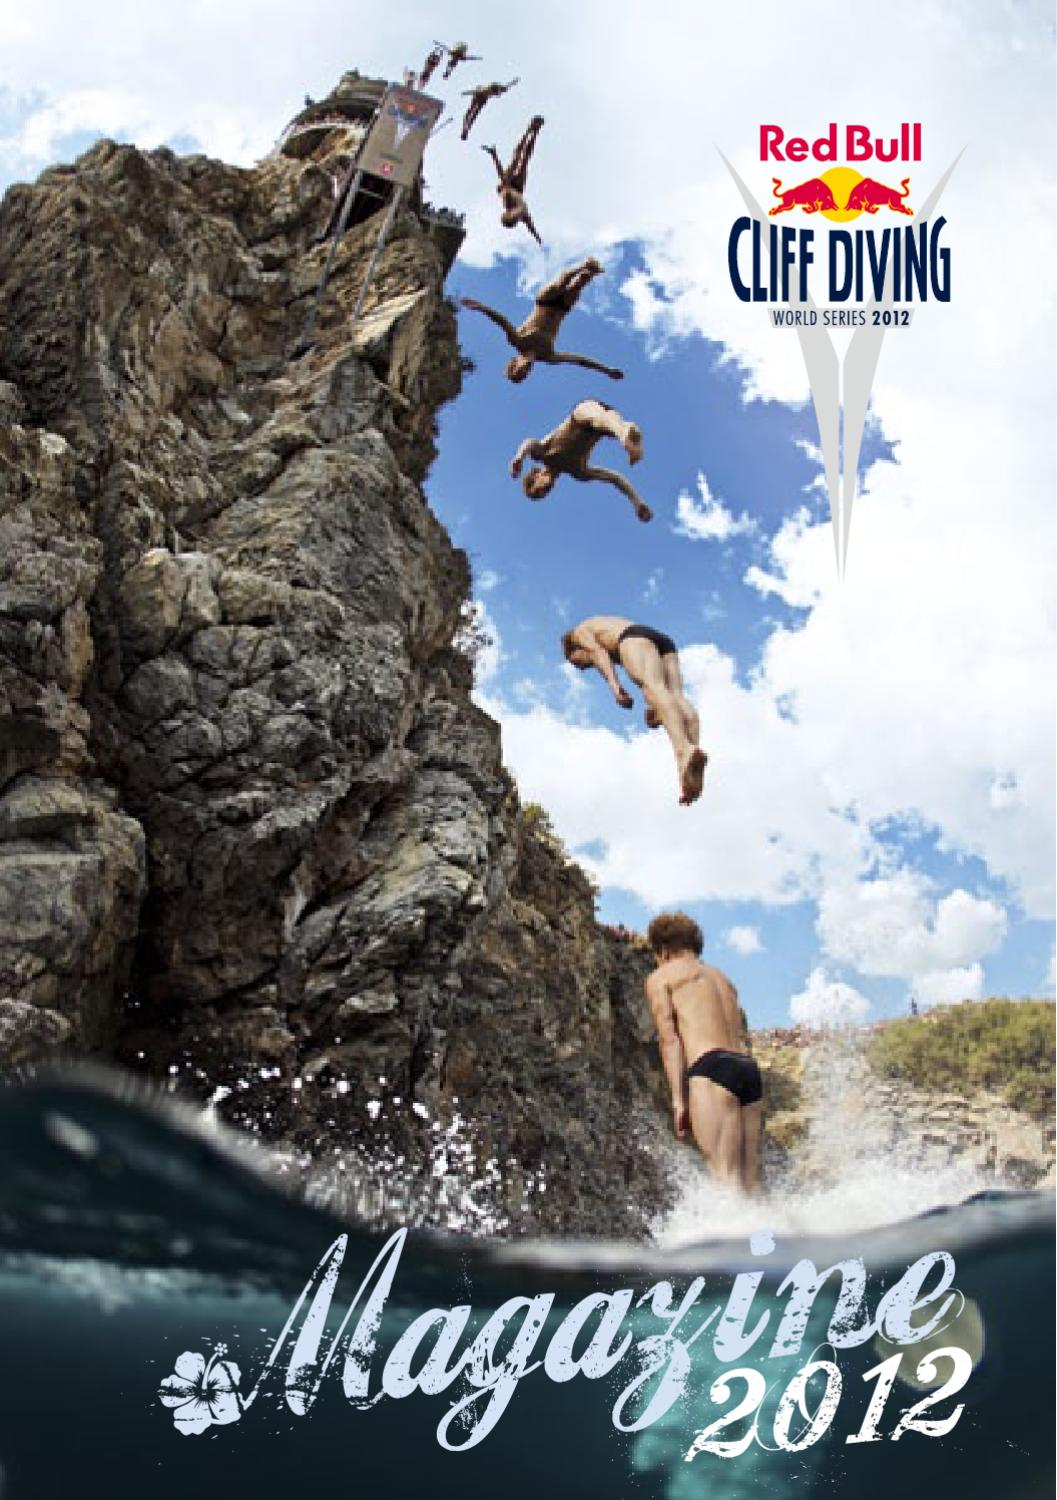 Red bull cliff diving magazine 2012 by red bull media house issuu - Highest cliff dive ...